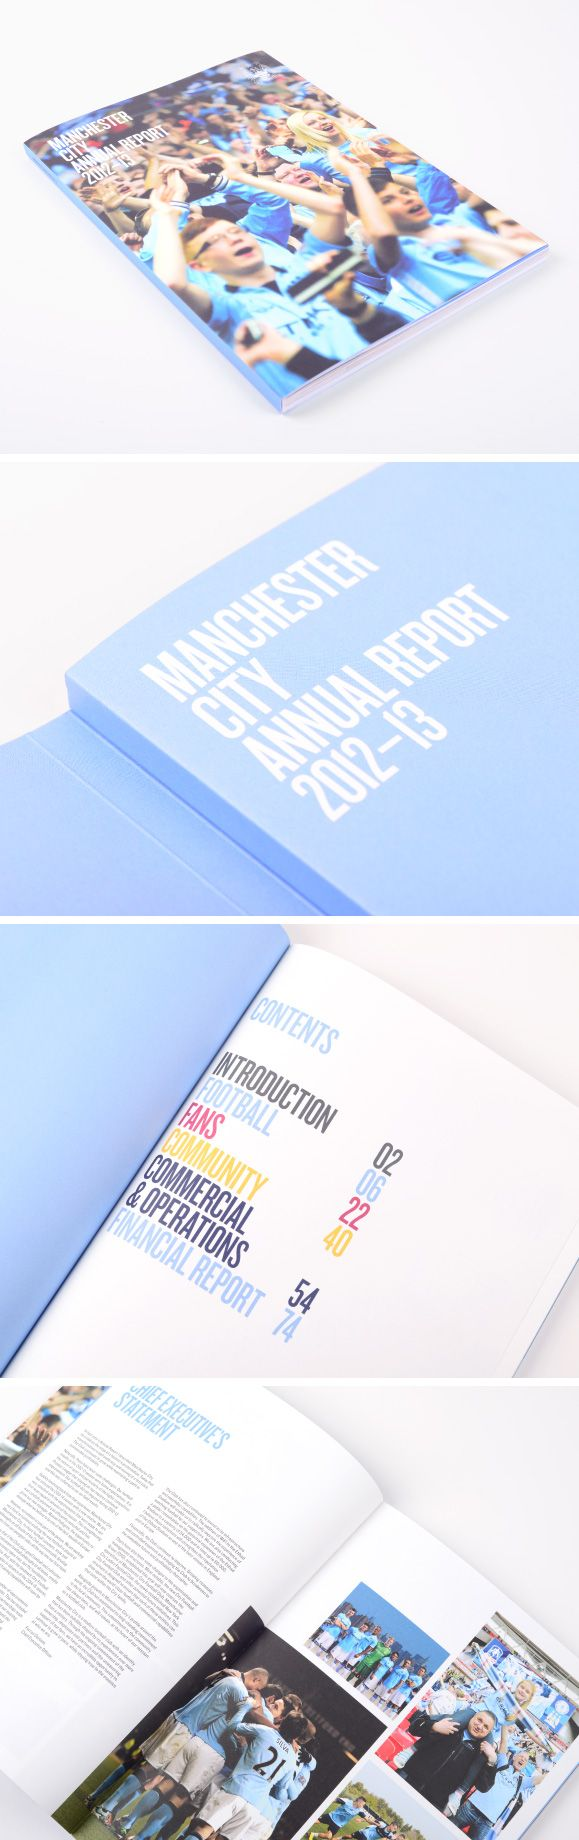 MCFC Annual Report by Music. Printed by Team.